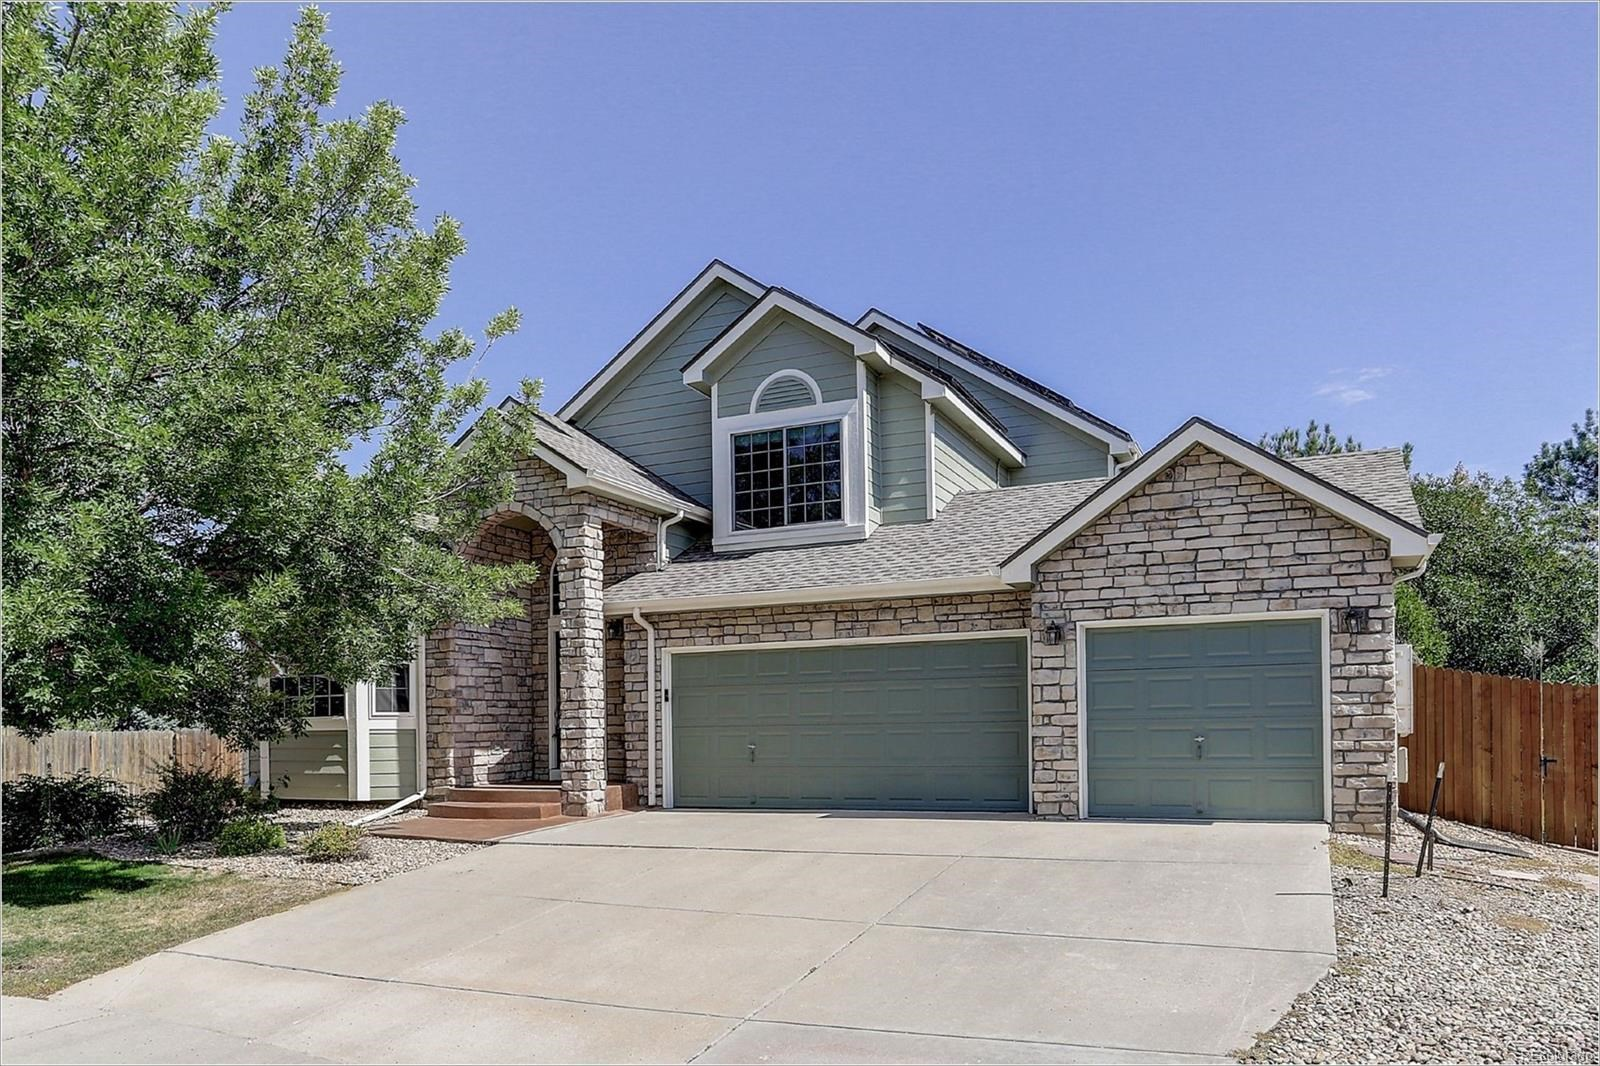 MLS# 8327774 - 3 - 806 W 127th Court, Westminster, CO 80234